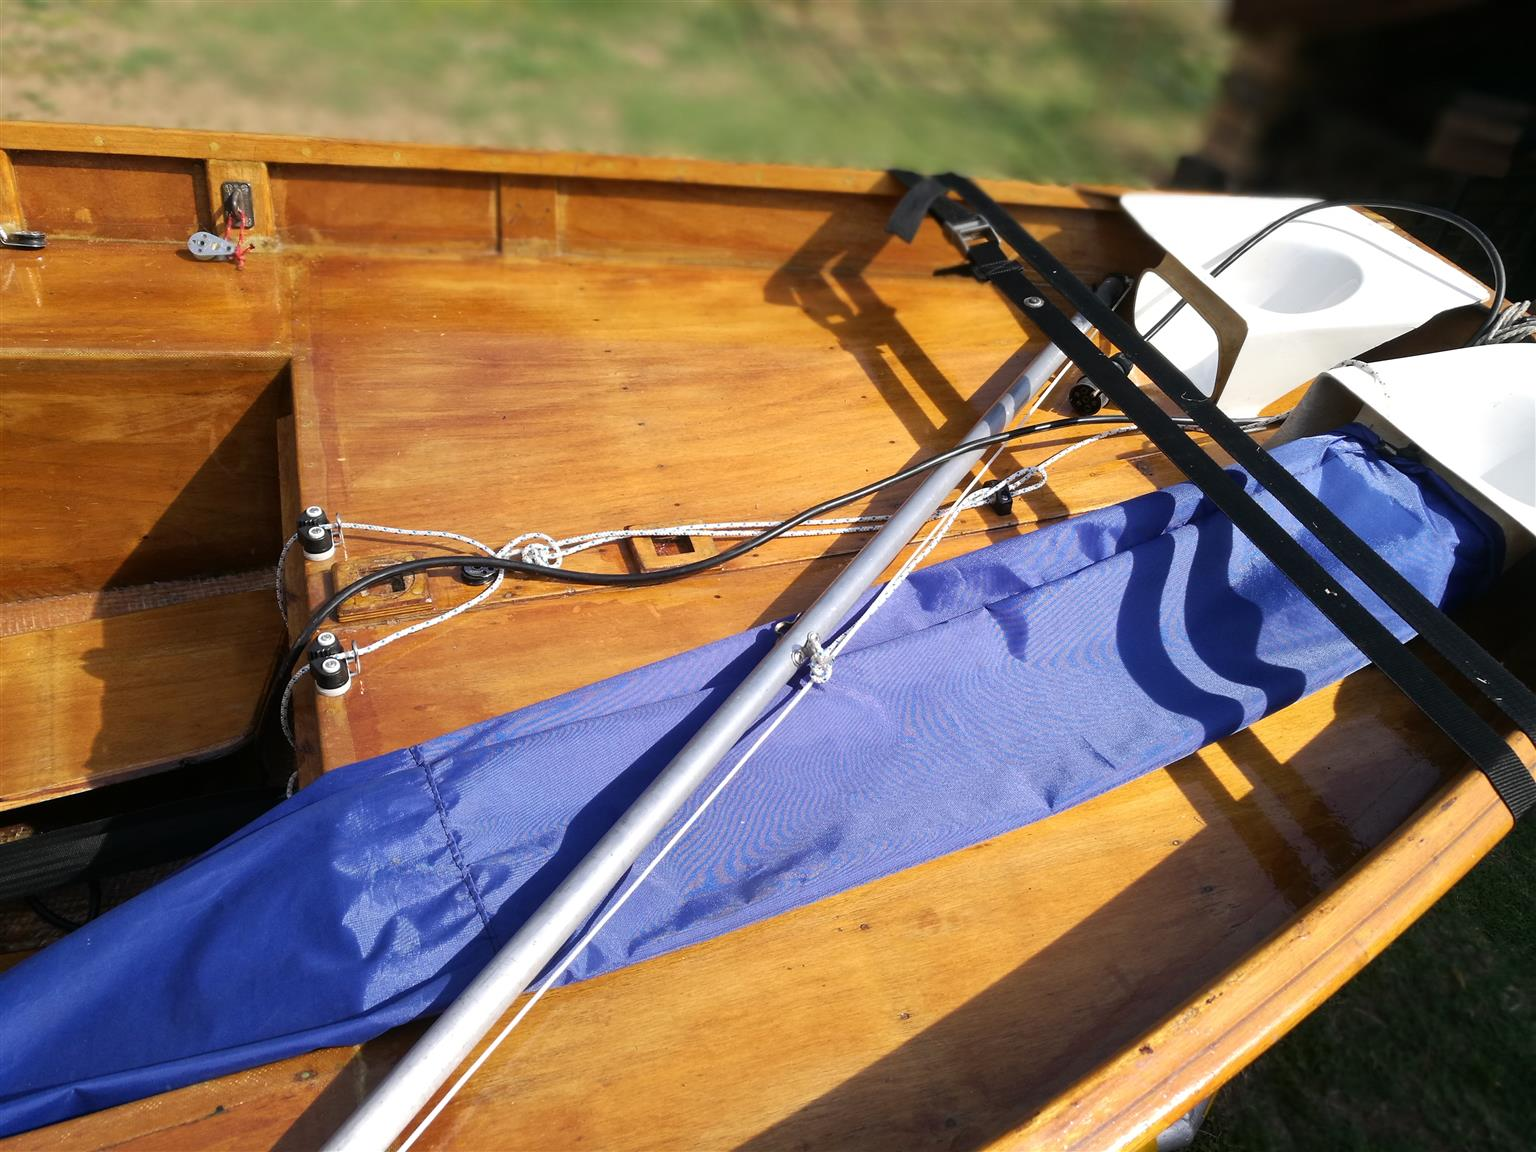 MIrror Sailing Dinghy, with full spinnaker set up, boat dolly, Roadworthy Trailer with Micro Dot